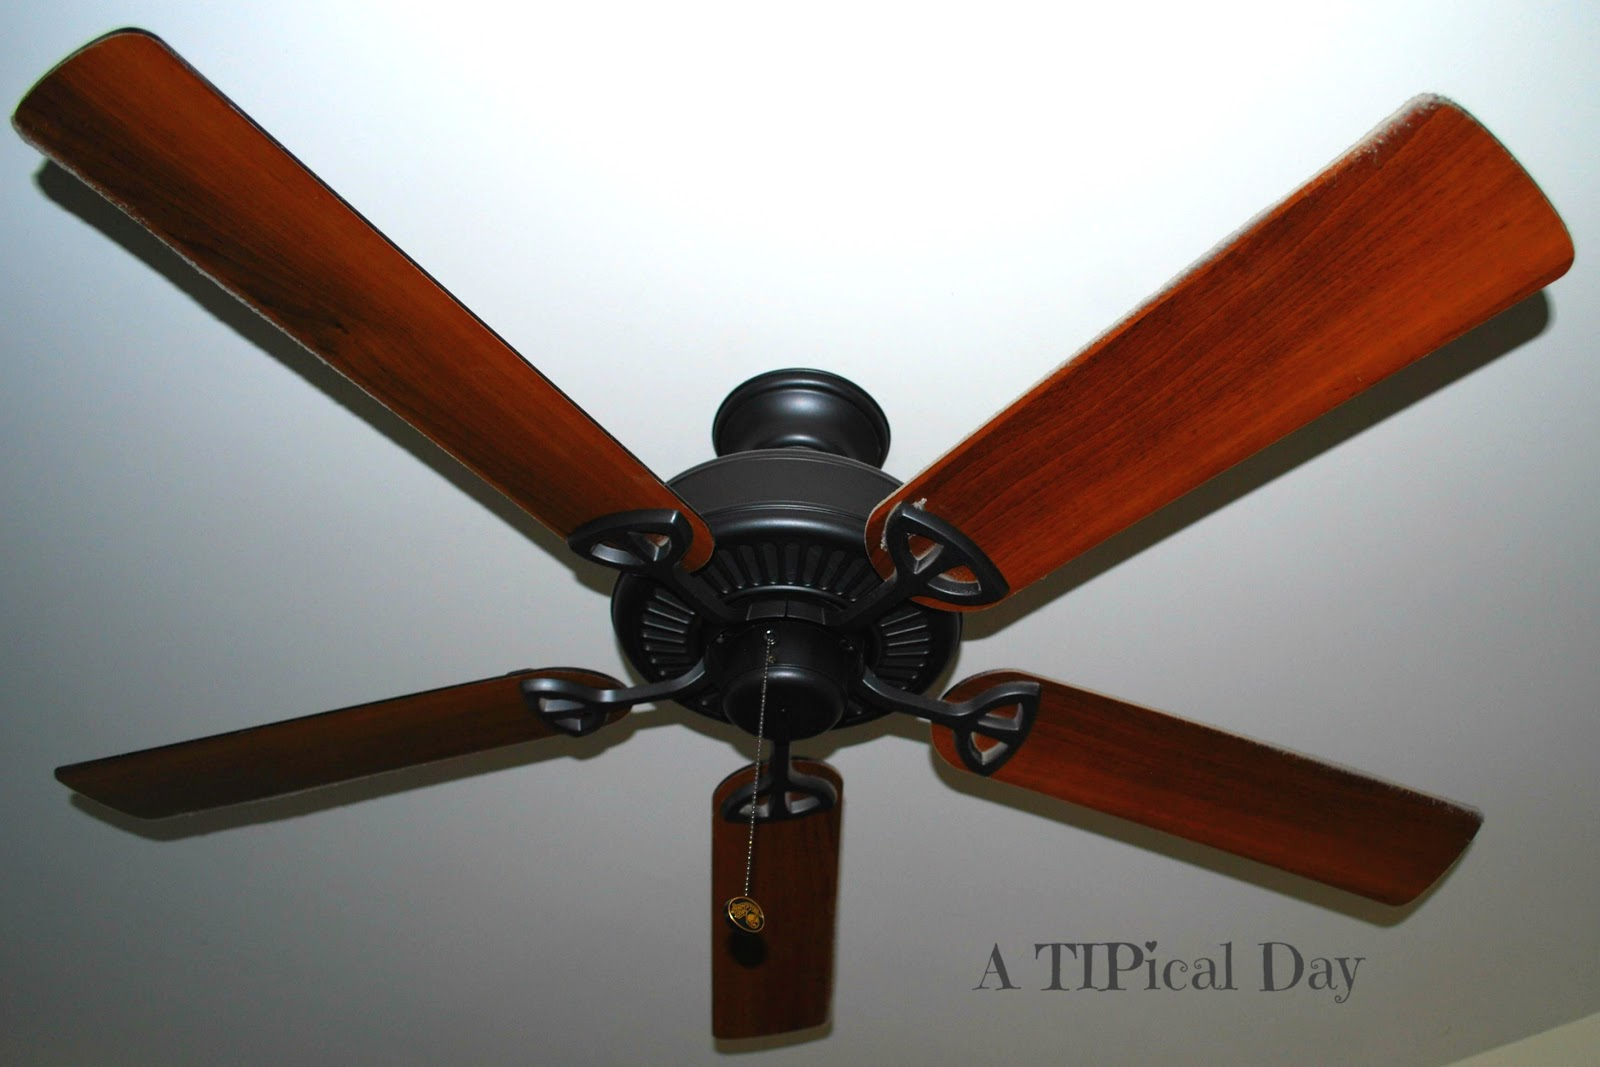 A TIPical Day: Cleaning Ceiling Fans